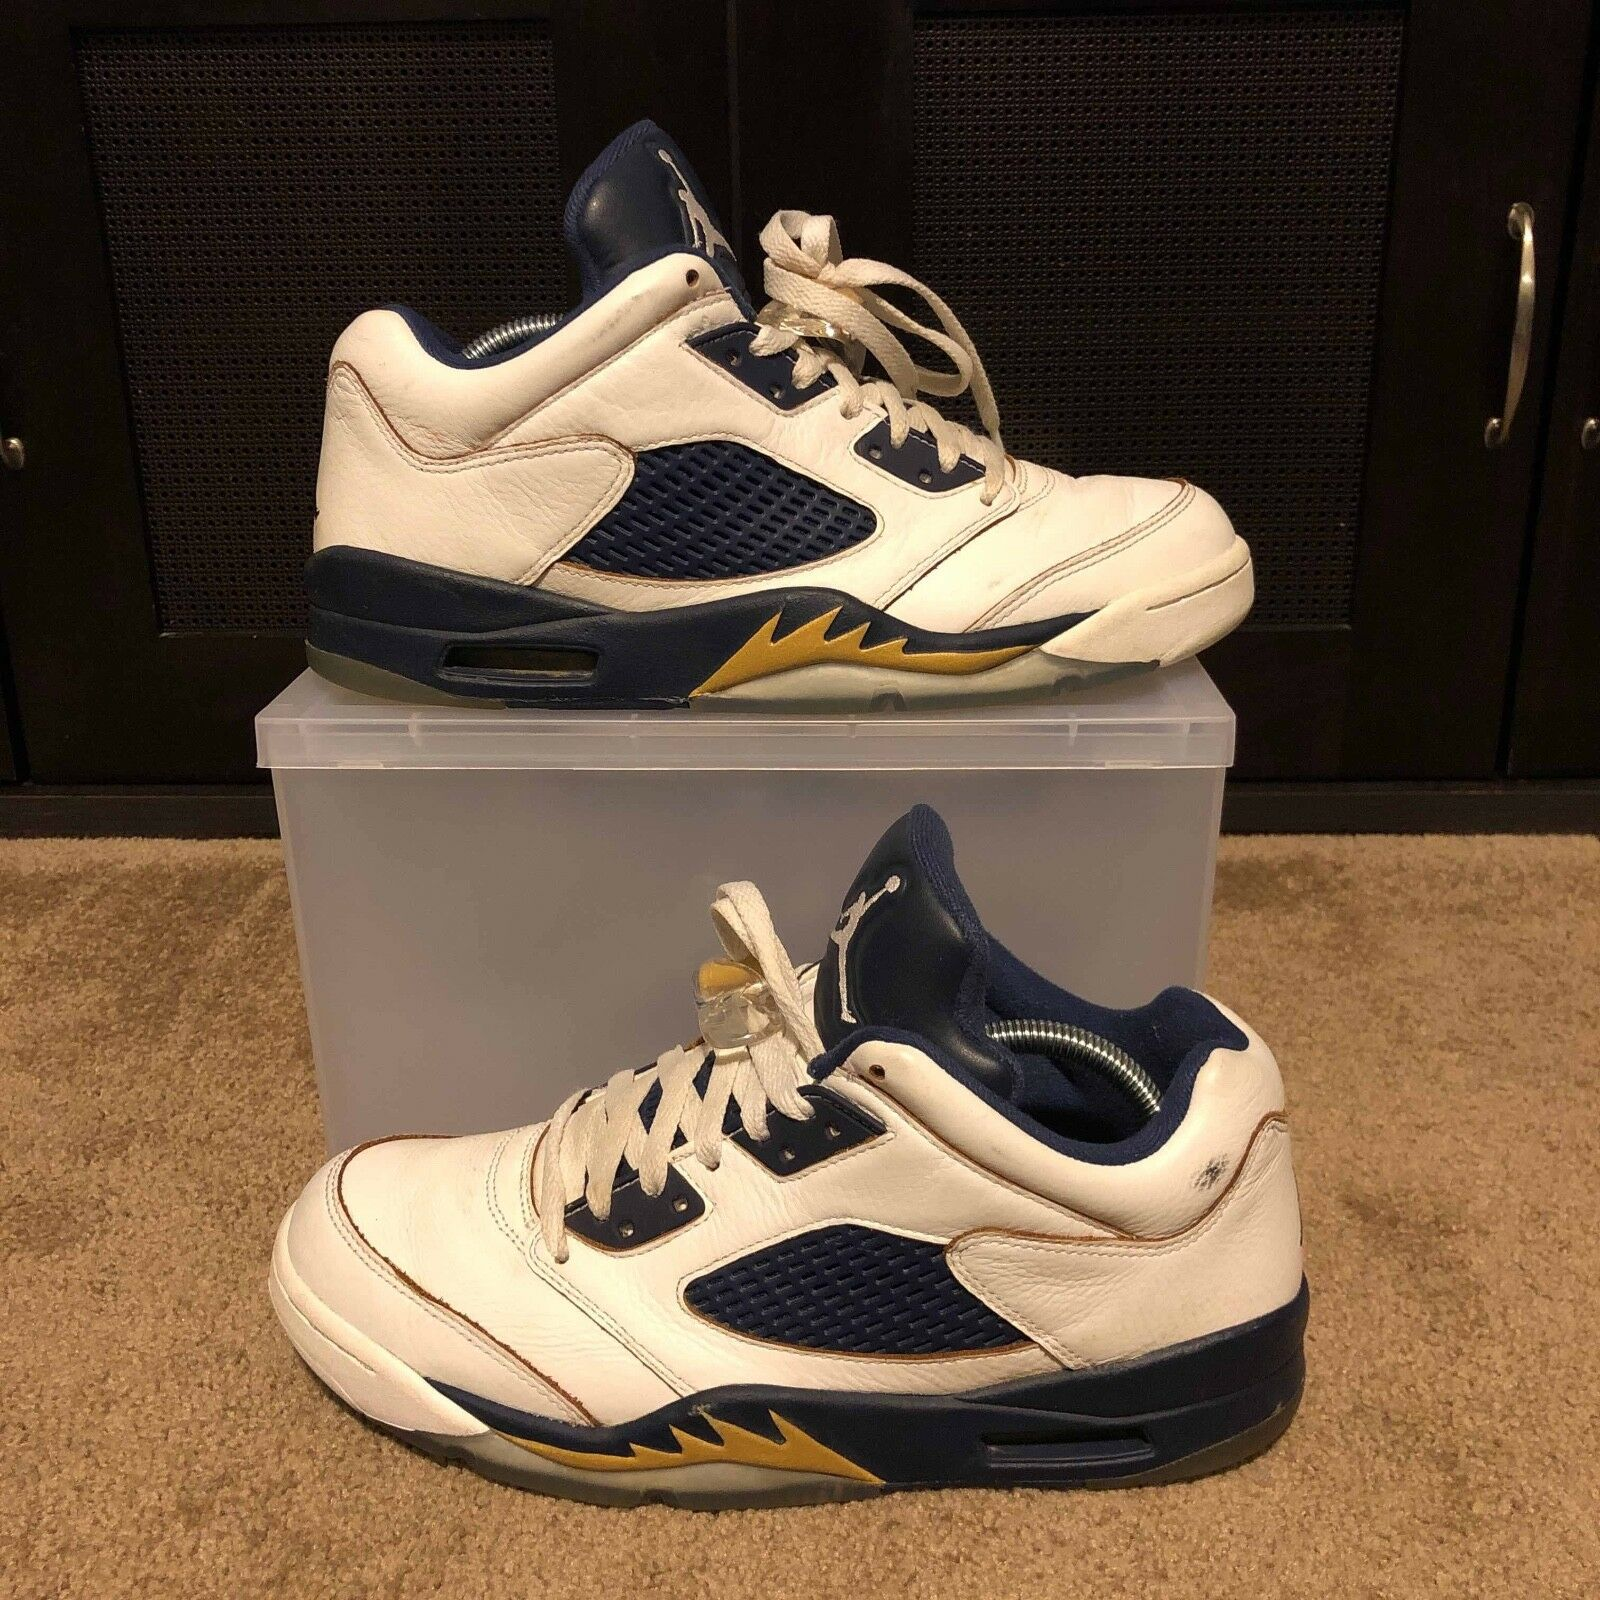 Air Jordan 5  Low Dunk From Above 819171-135 Size 9.5 USED